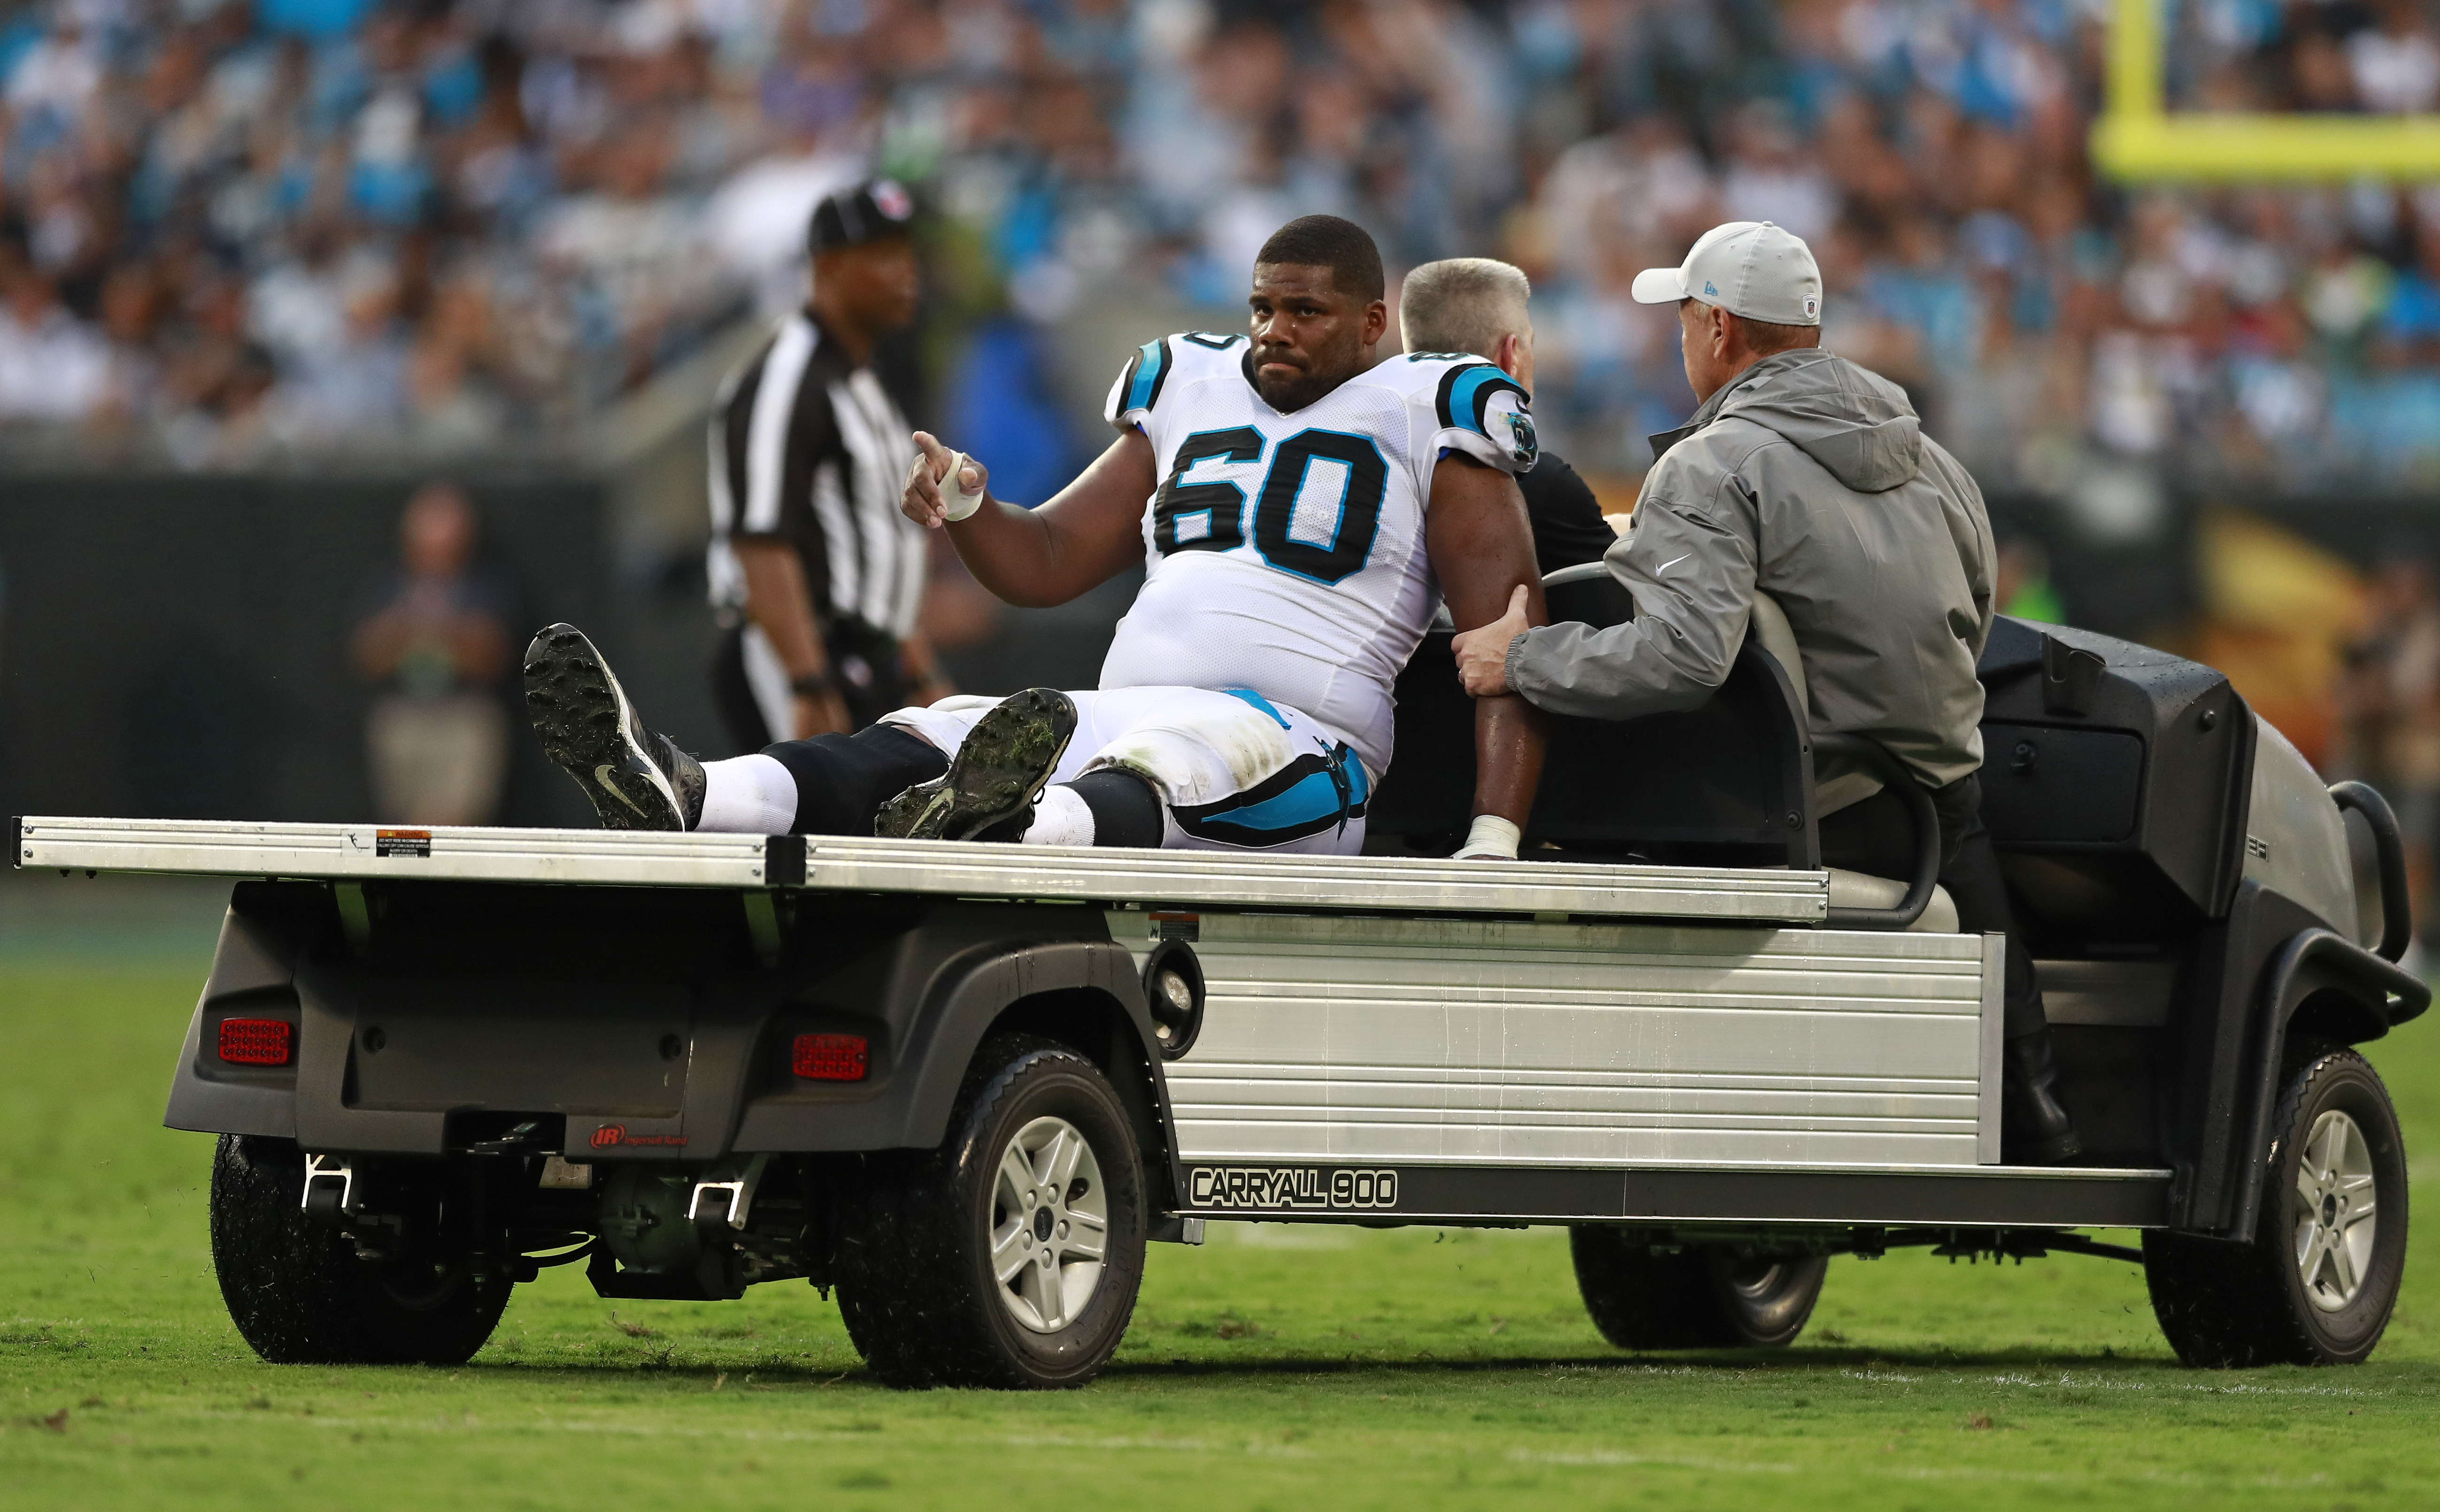 Panthers sign tackle Clark, put Williams on injured reserve